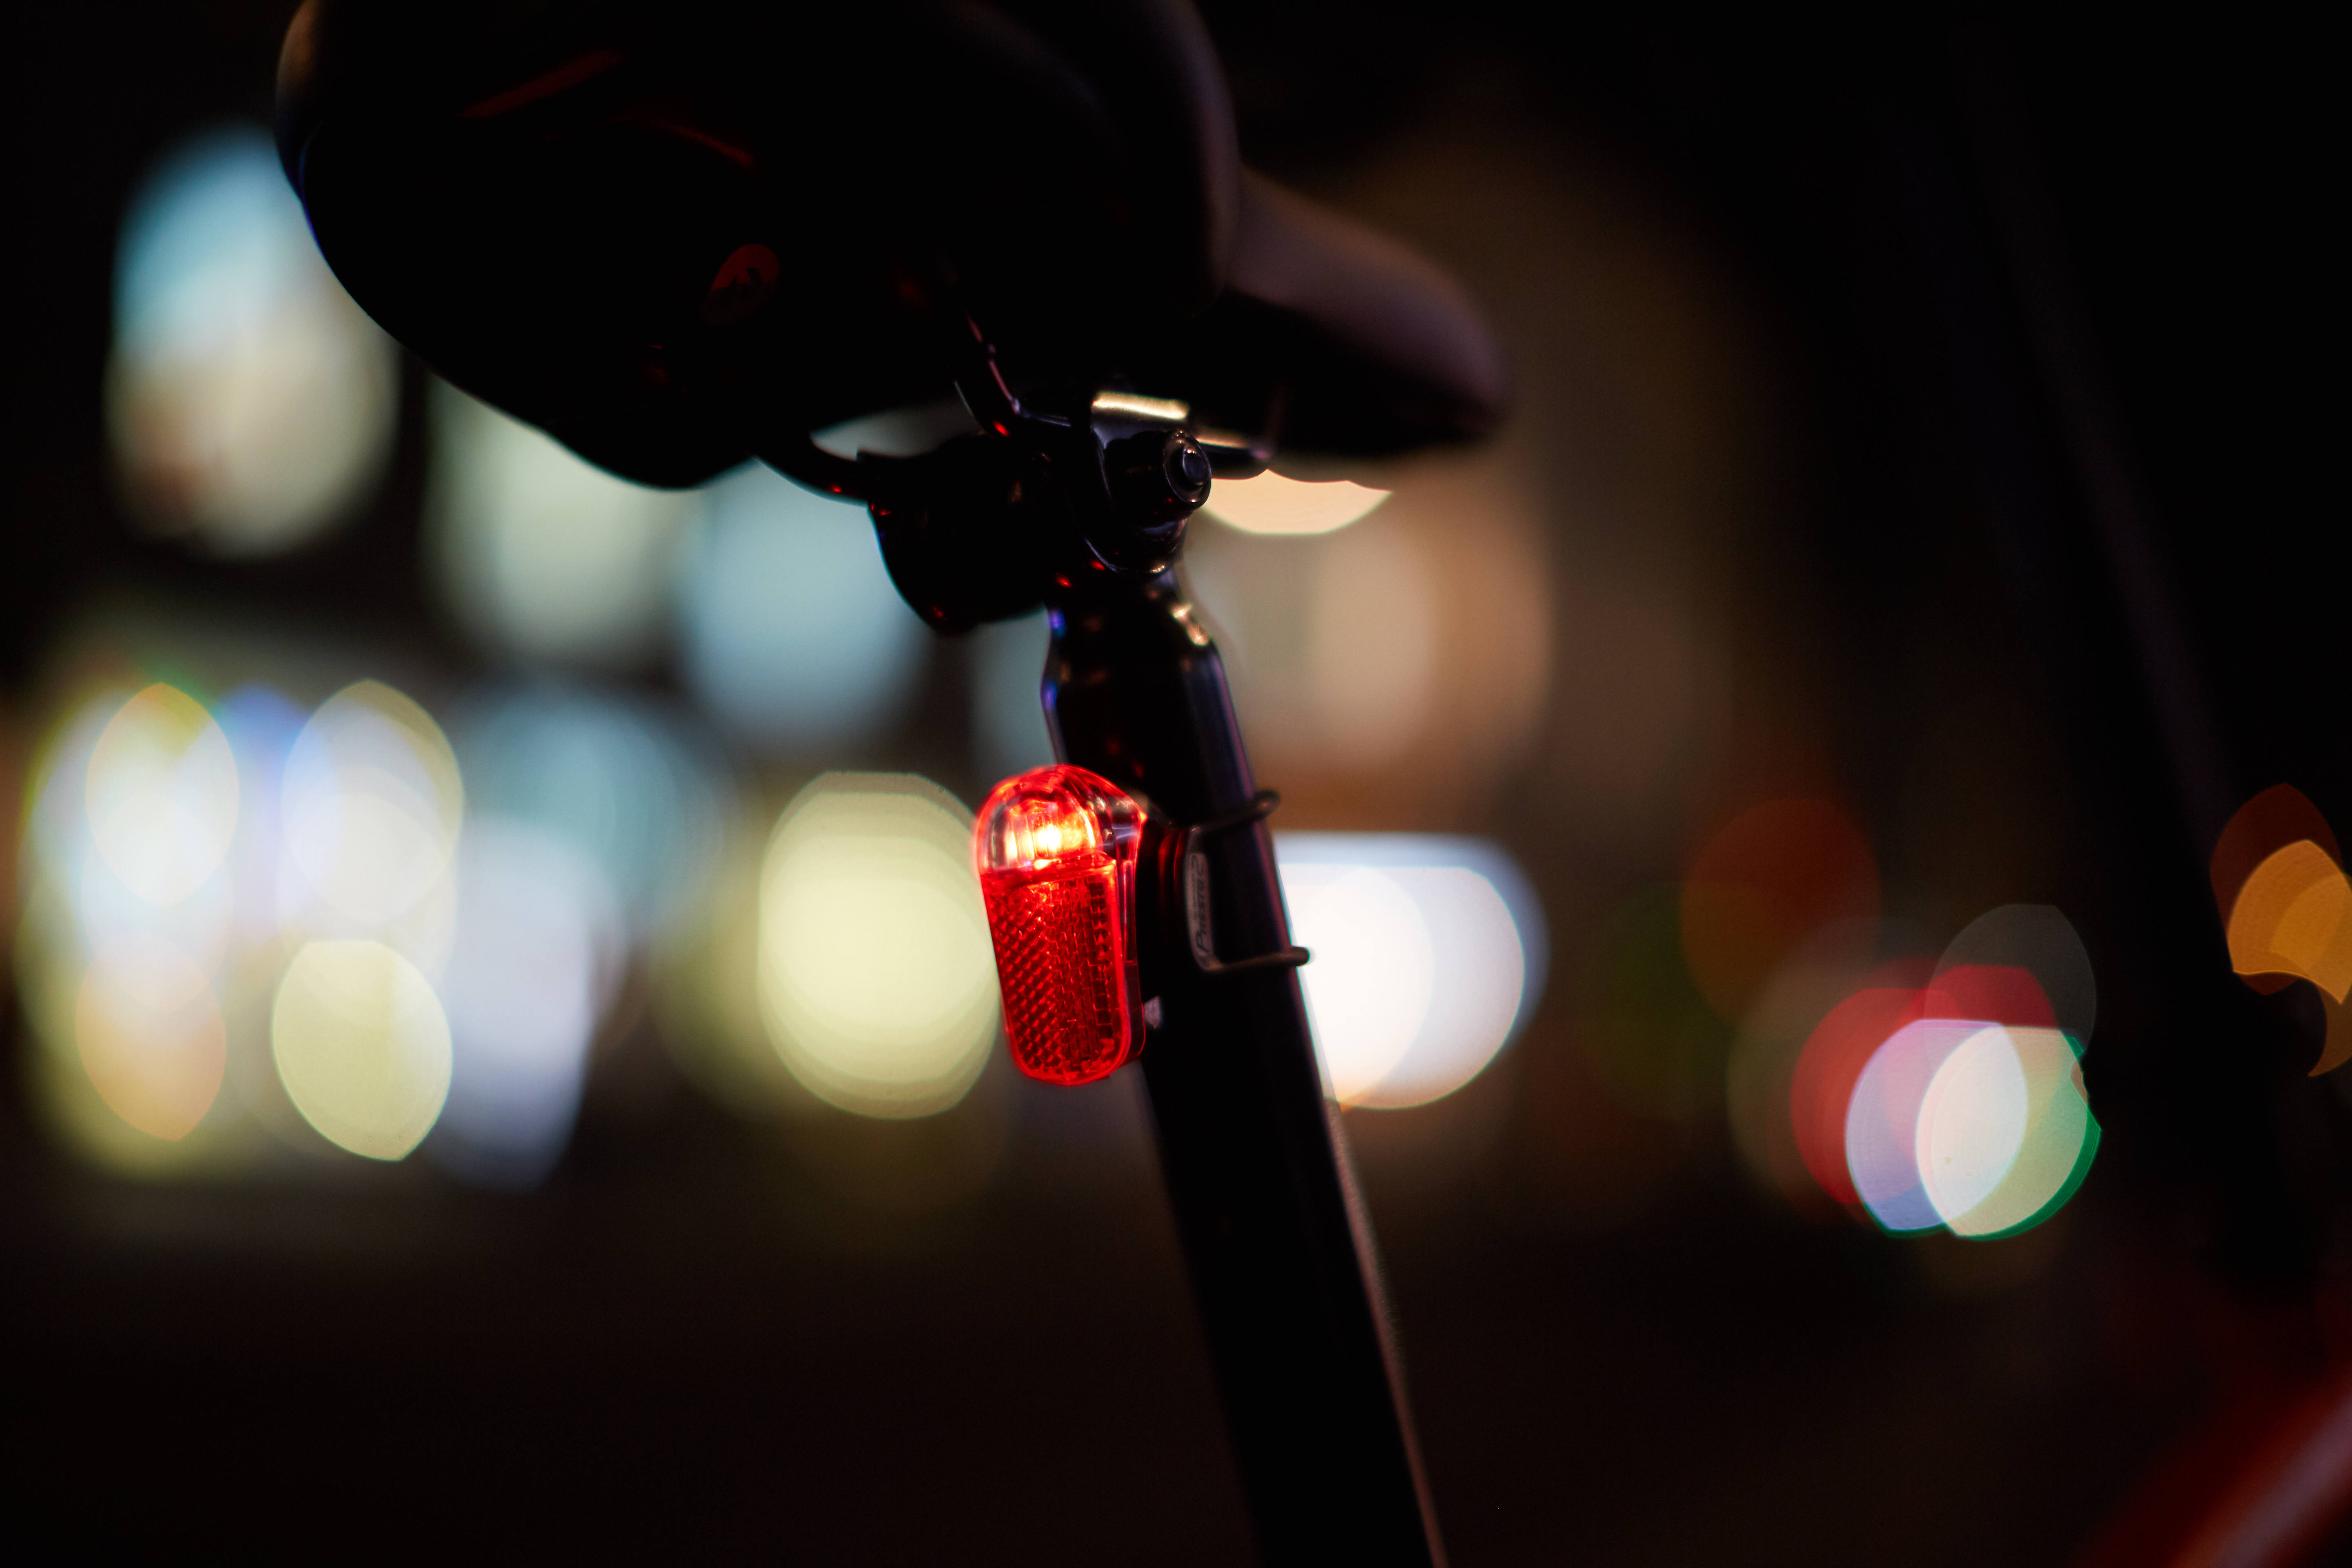 How To Choose Your Bike Lights?